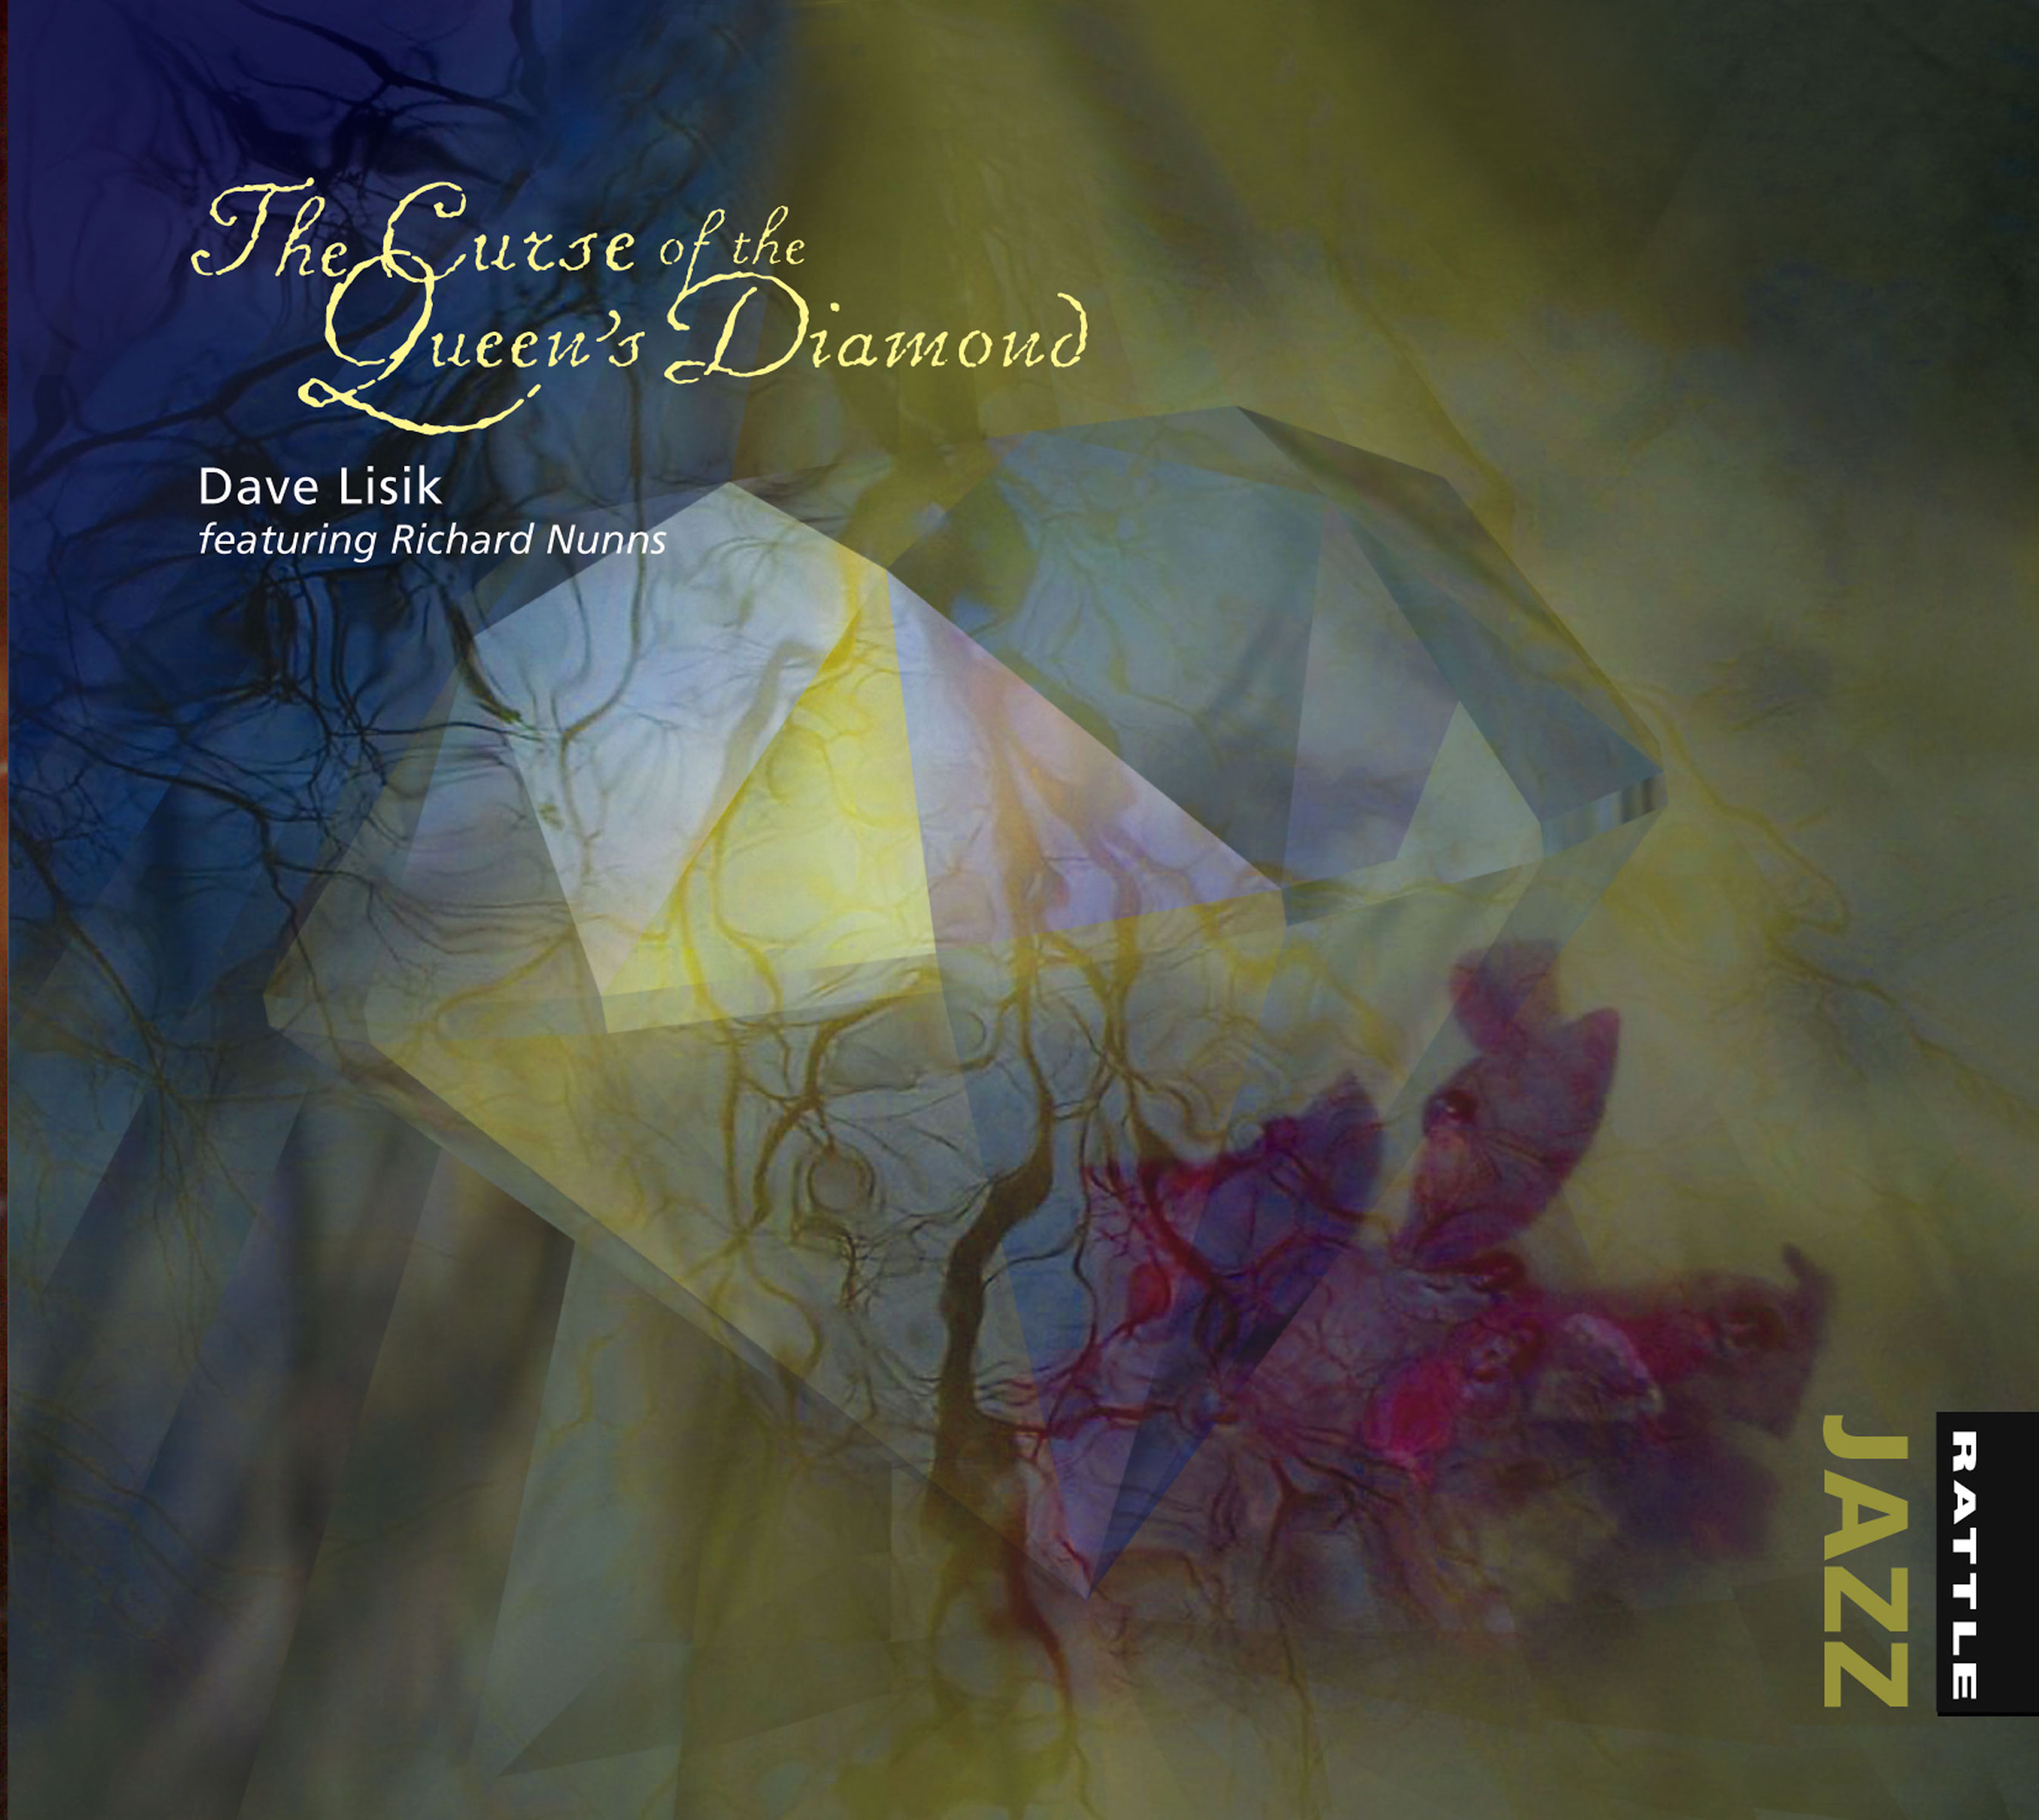 Dave Lisik | The Curse of the Queen's Diamond - downloadable MP3 ALBUM